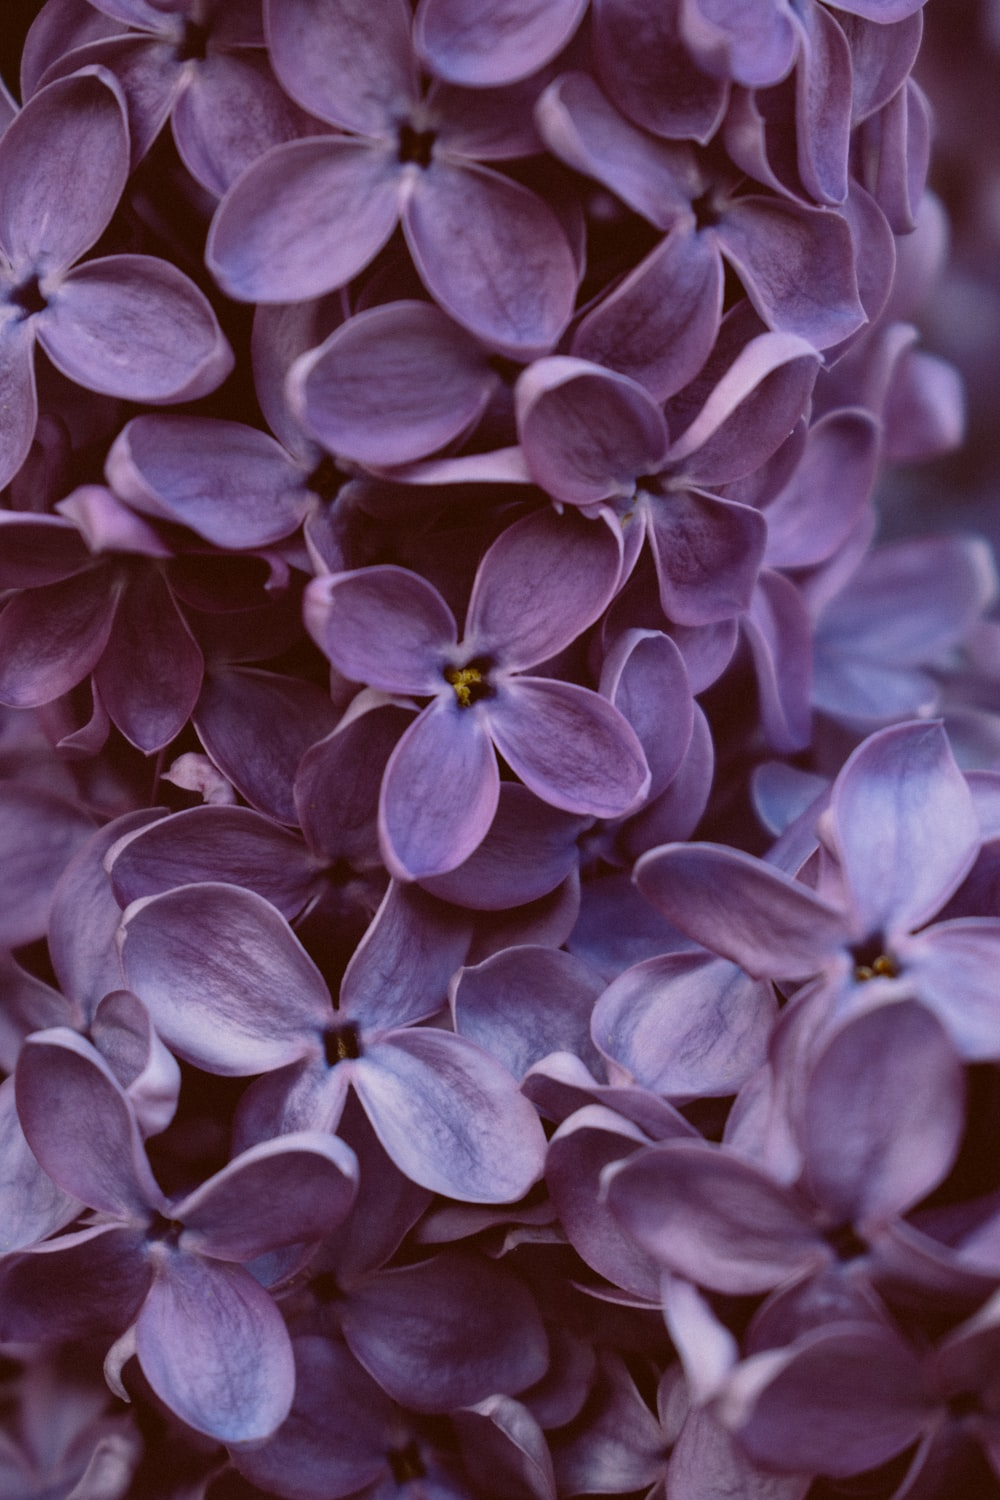 purple flowers in tilt shift lens